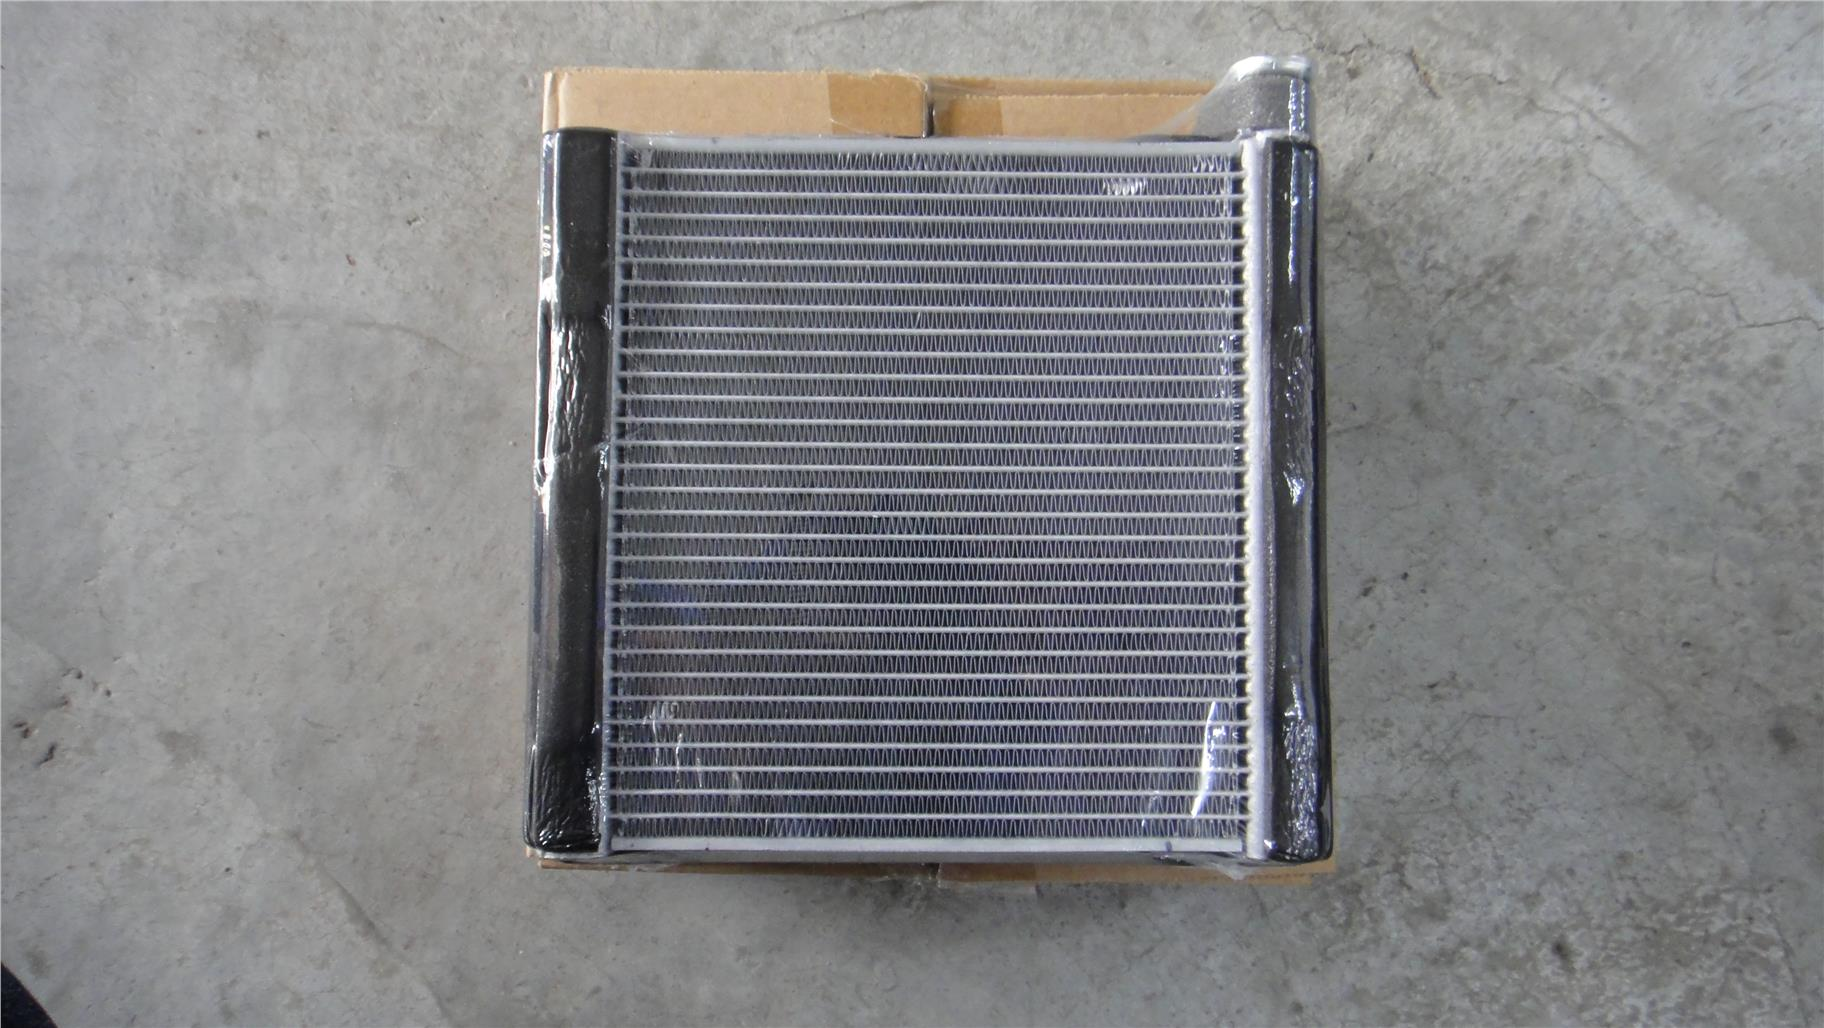 Nissan Vanette/Evalia NV200 Air-Cond Evaporator/Cooling Coil